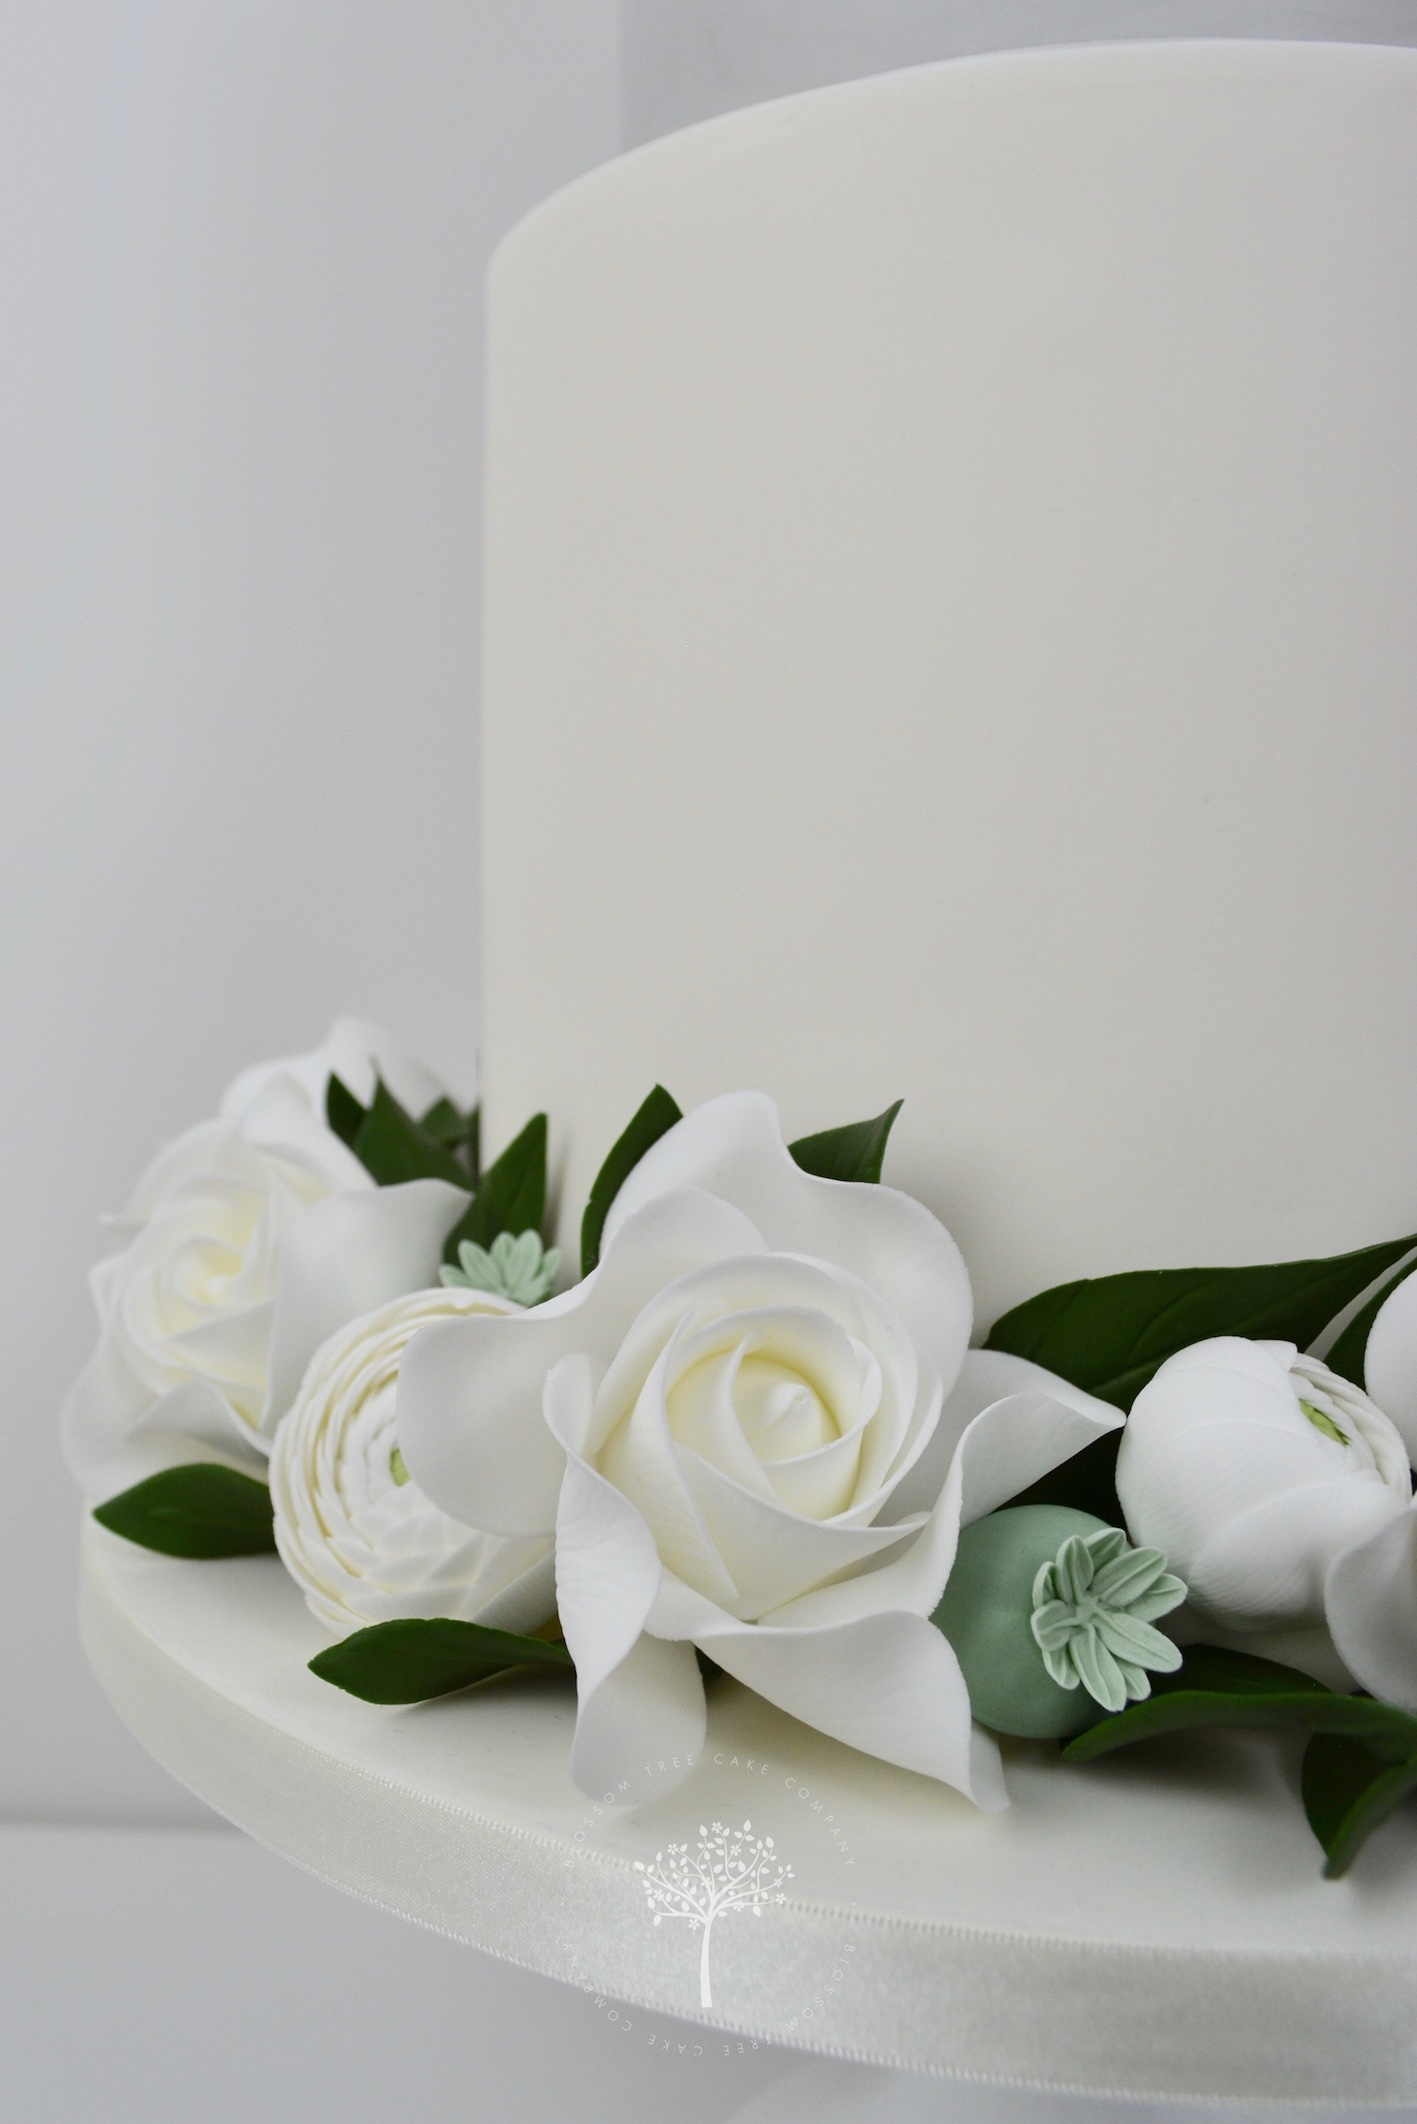 White Roses and Ranunculus wedding cake by Blossom Tree Cake Company Harrogate North Yorkshire - roses and ranunculus.jpg